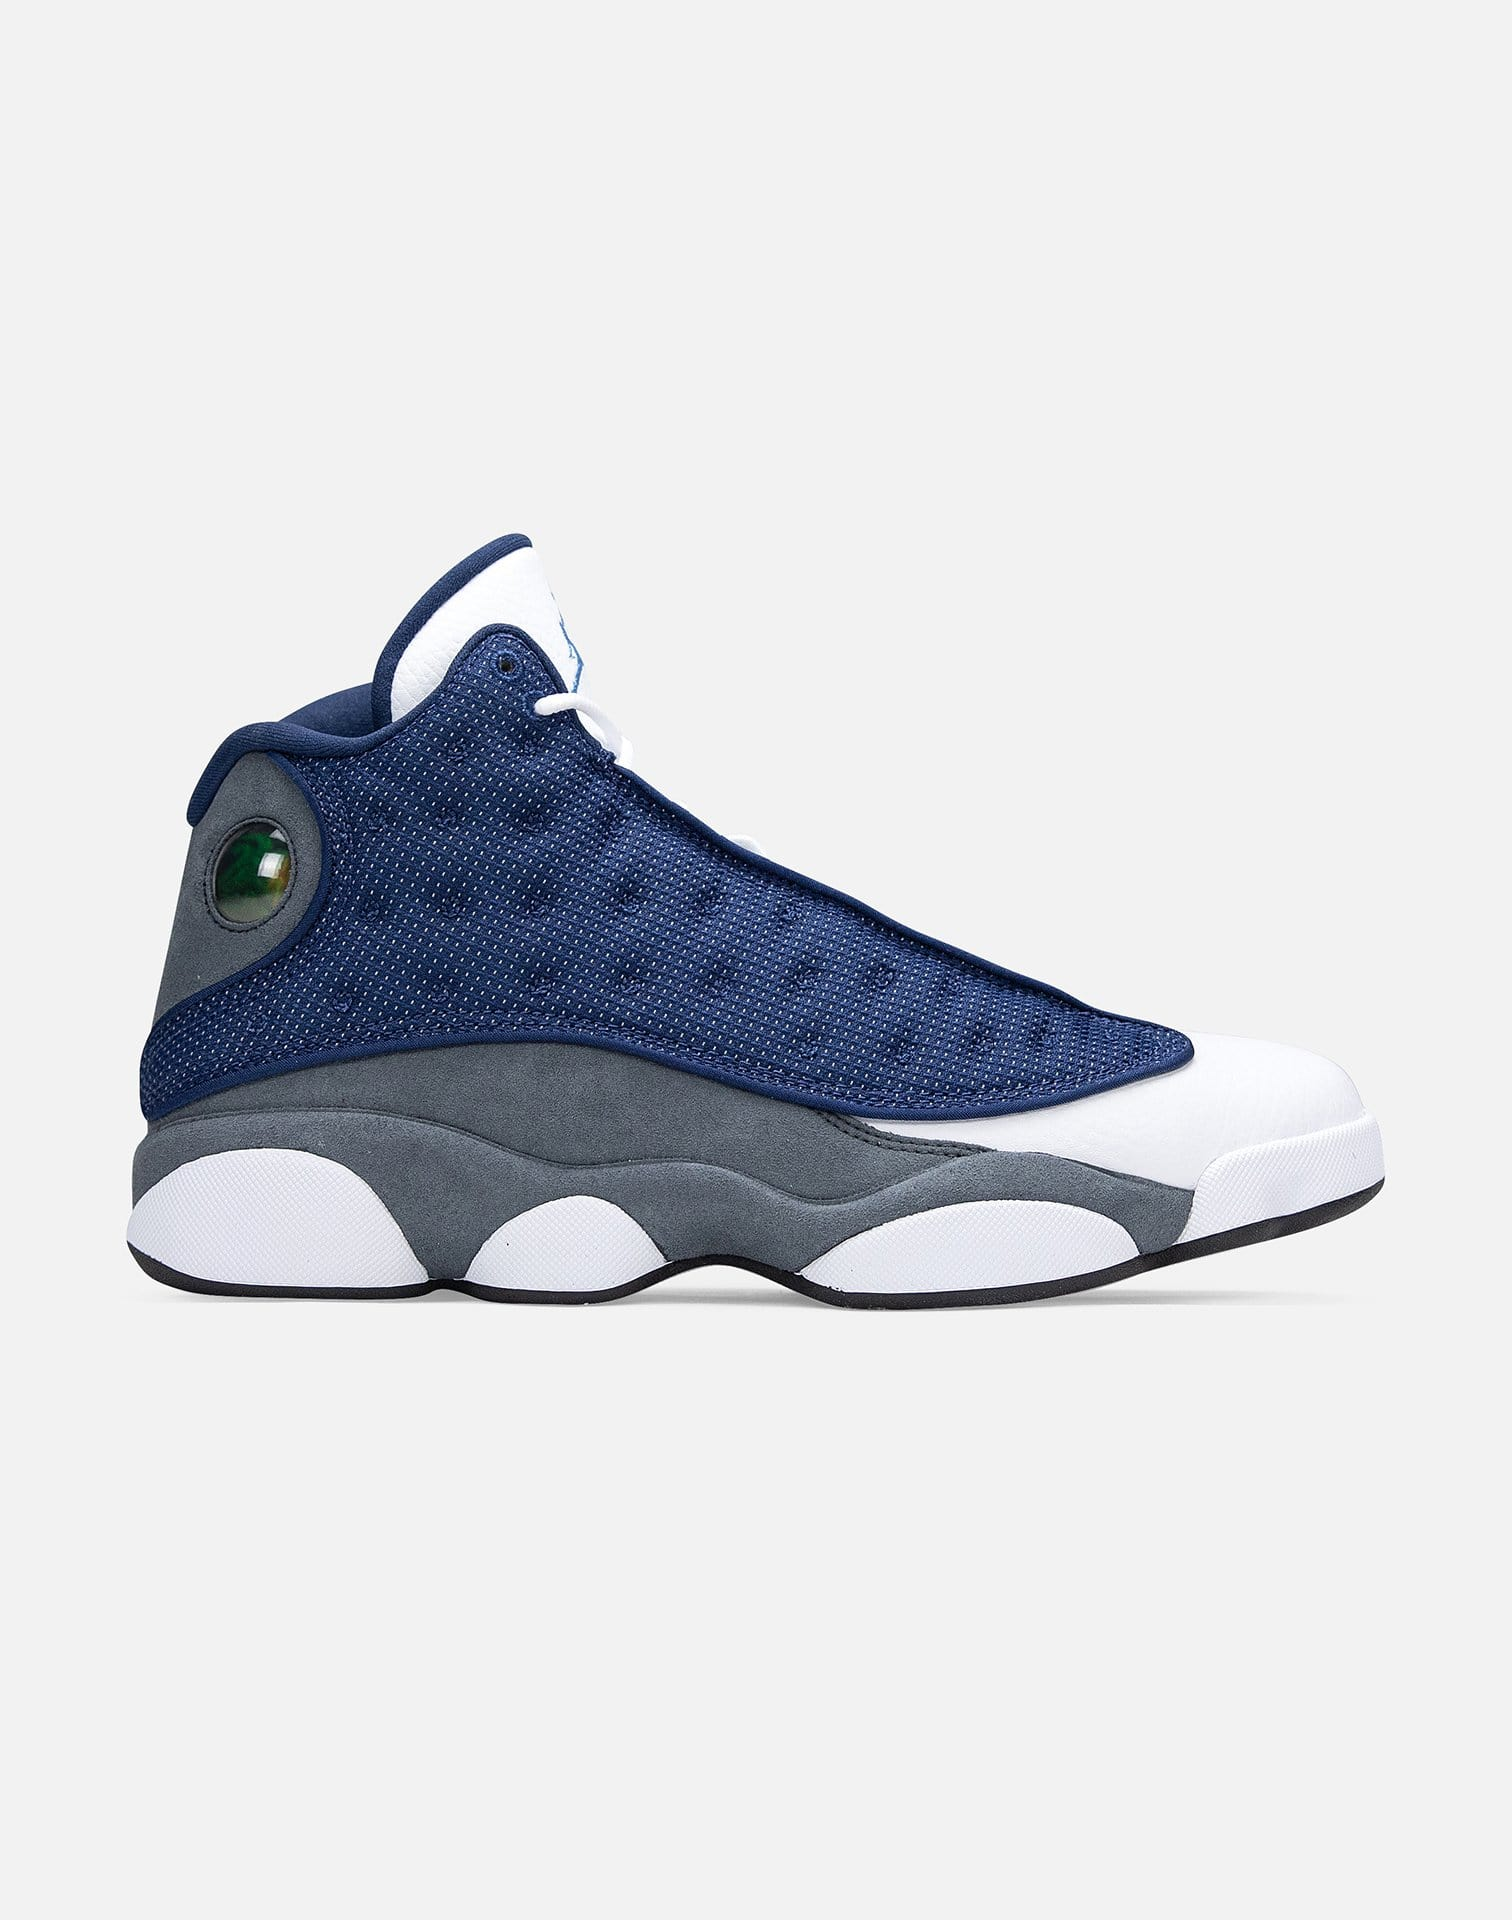 Jordan AIR JORDAN RETRO 13 'FLINT'